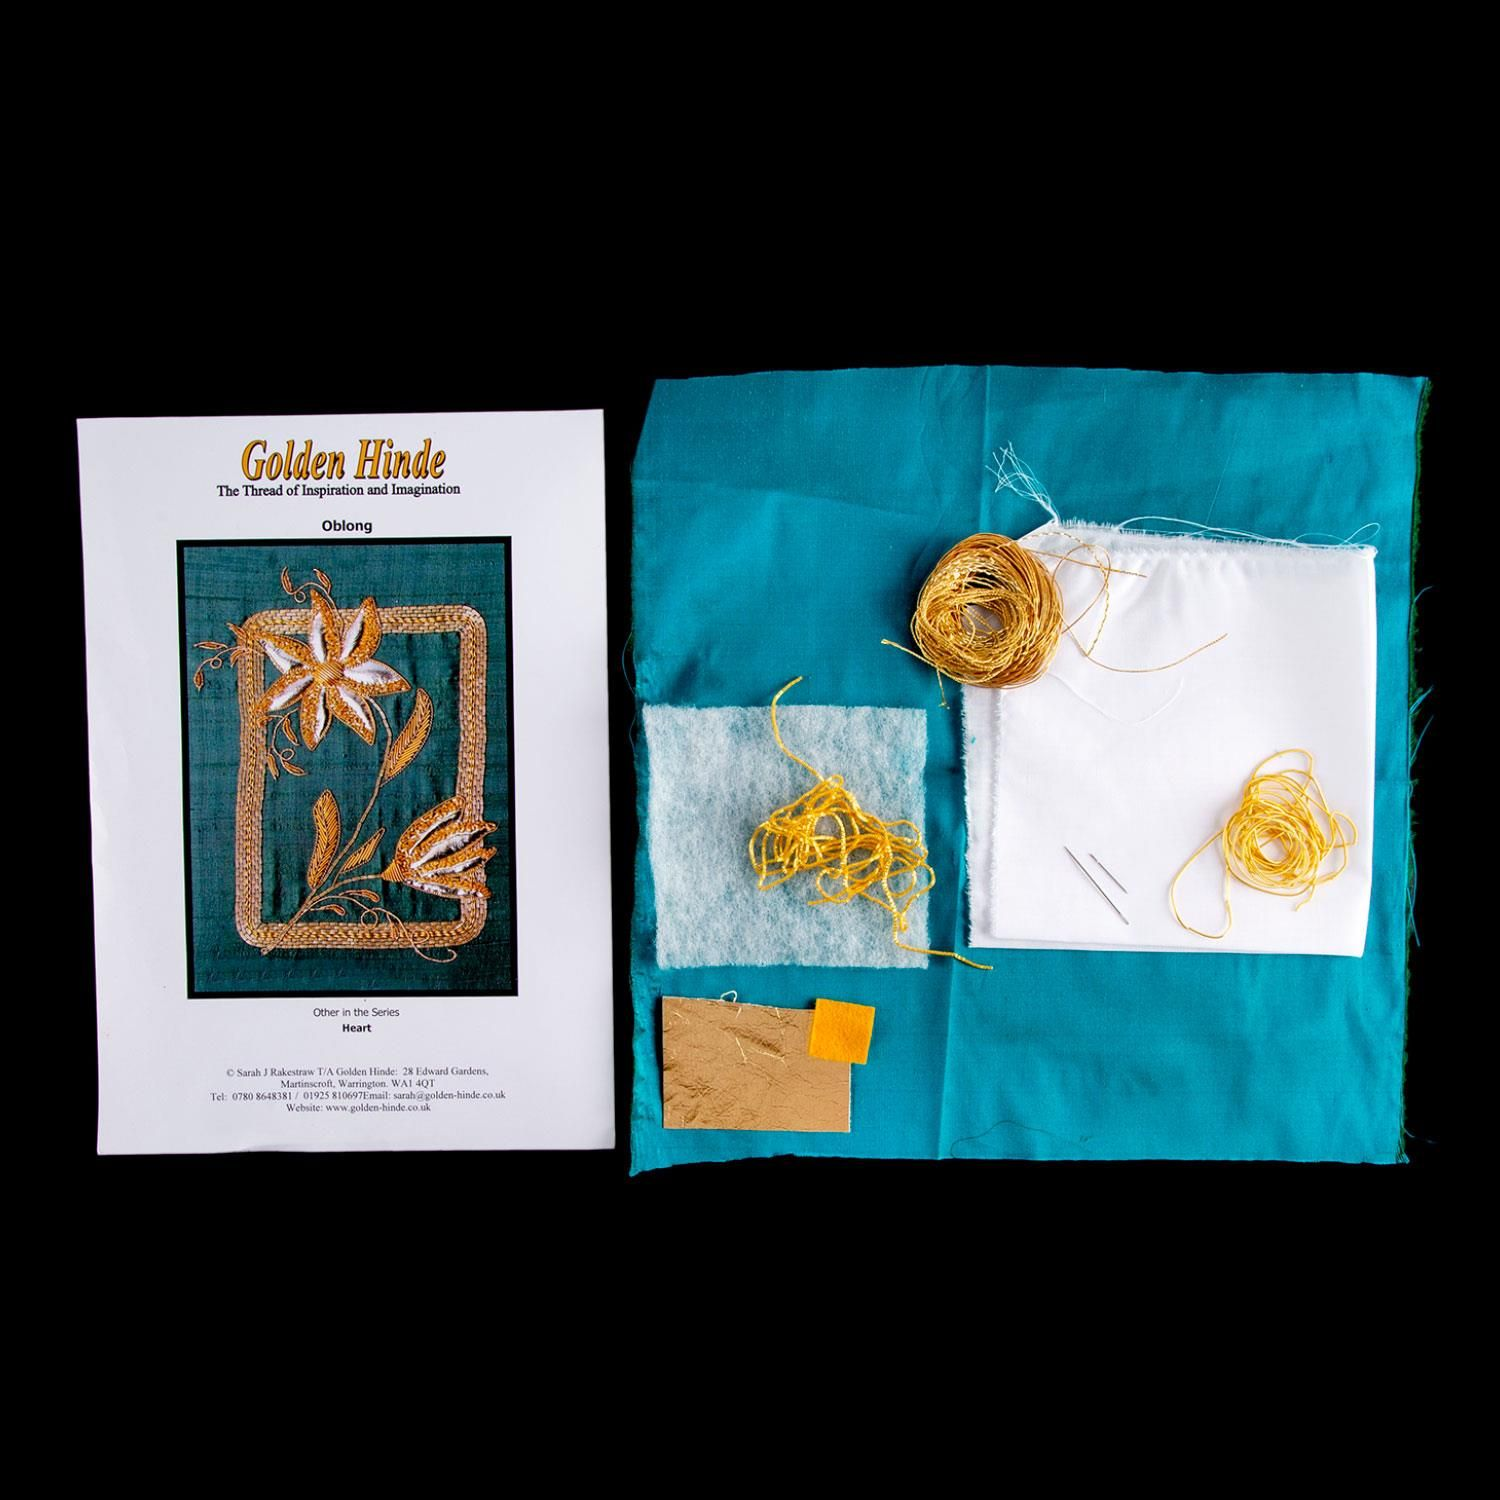 Golden Hinde Goldwork Oblong Goldwork Embroidery Kit  Product Contents- x1 Golden Hinde Goldwork Oblong Goldwork Embroidery Kit  Golden Hinde specialise in Goldwork Embroidery. We produce Quality English Goldwork Embroidery kits and sell the goldwork wires and goldwork threads and all your sundry goldwork embroidery requirements to make your own designs come alive.  Features and Benefits:  All patterns are designed by us and are exclusive to Golden Hinde. All kits are packed lovingly by hand by